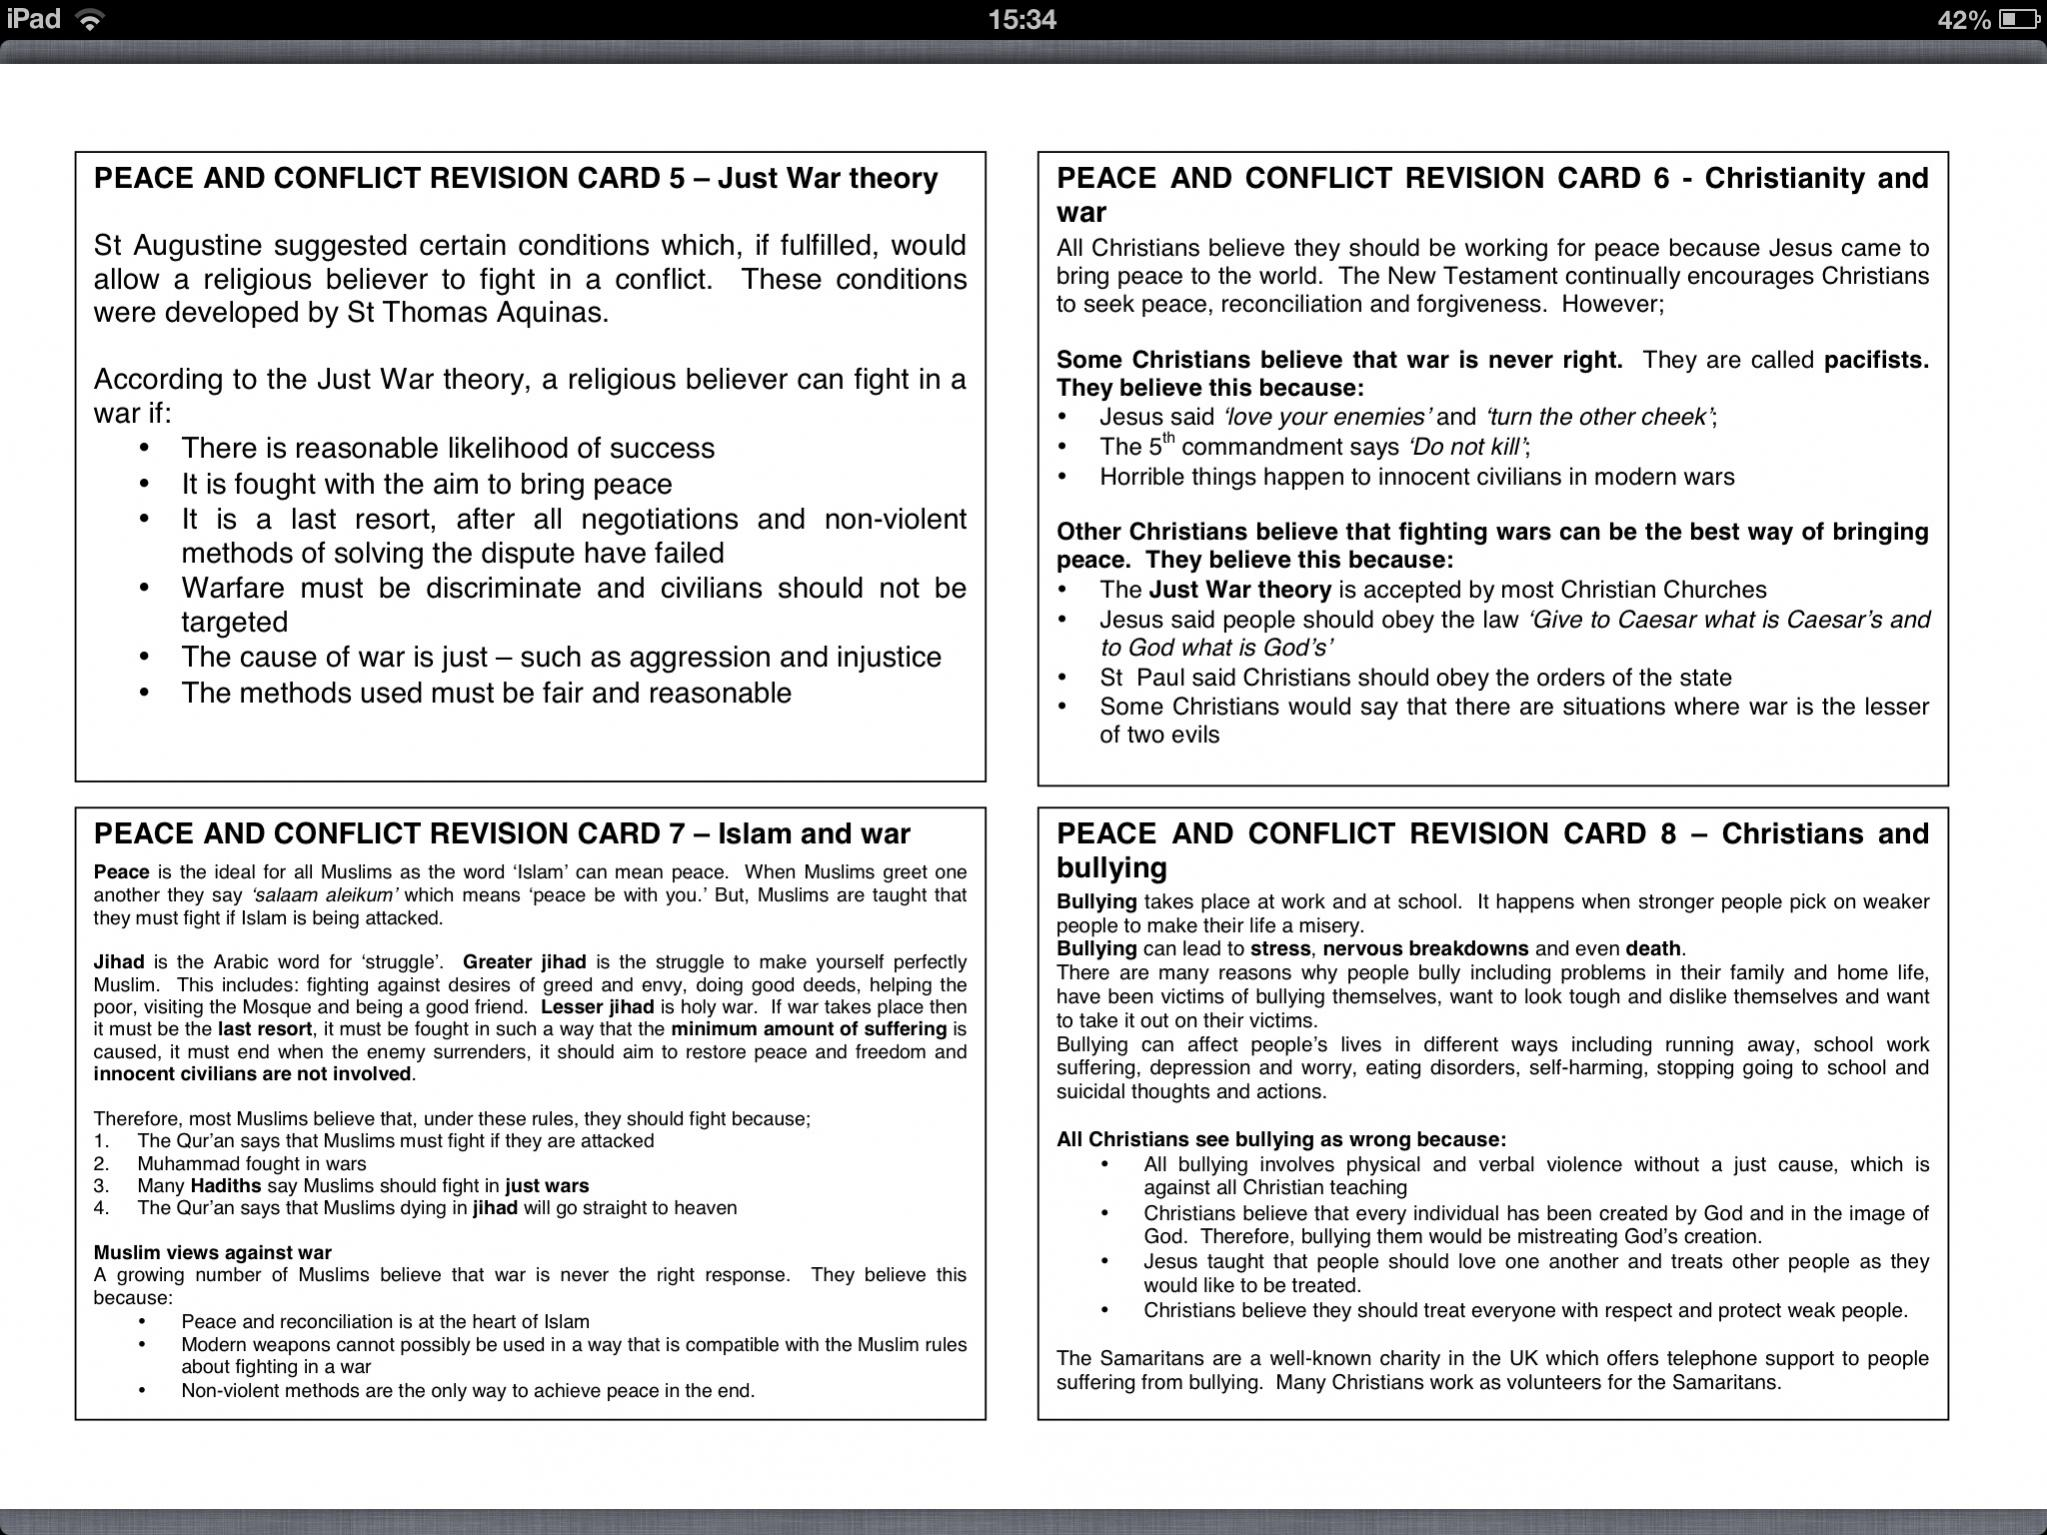 Gcse biology b  past papers aqa   monashshortcourses com The Student Room Attached Images